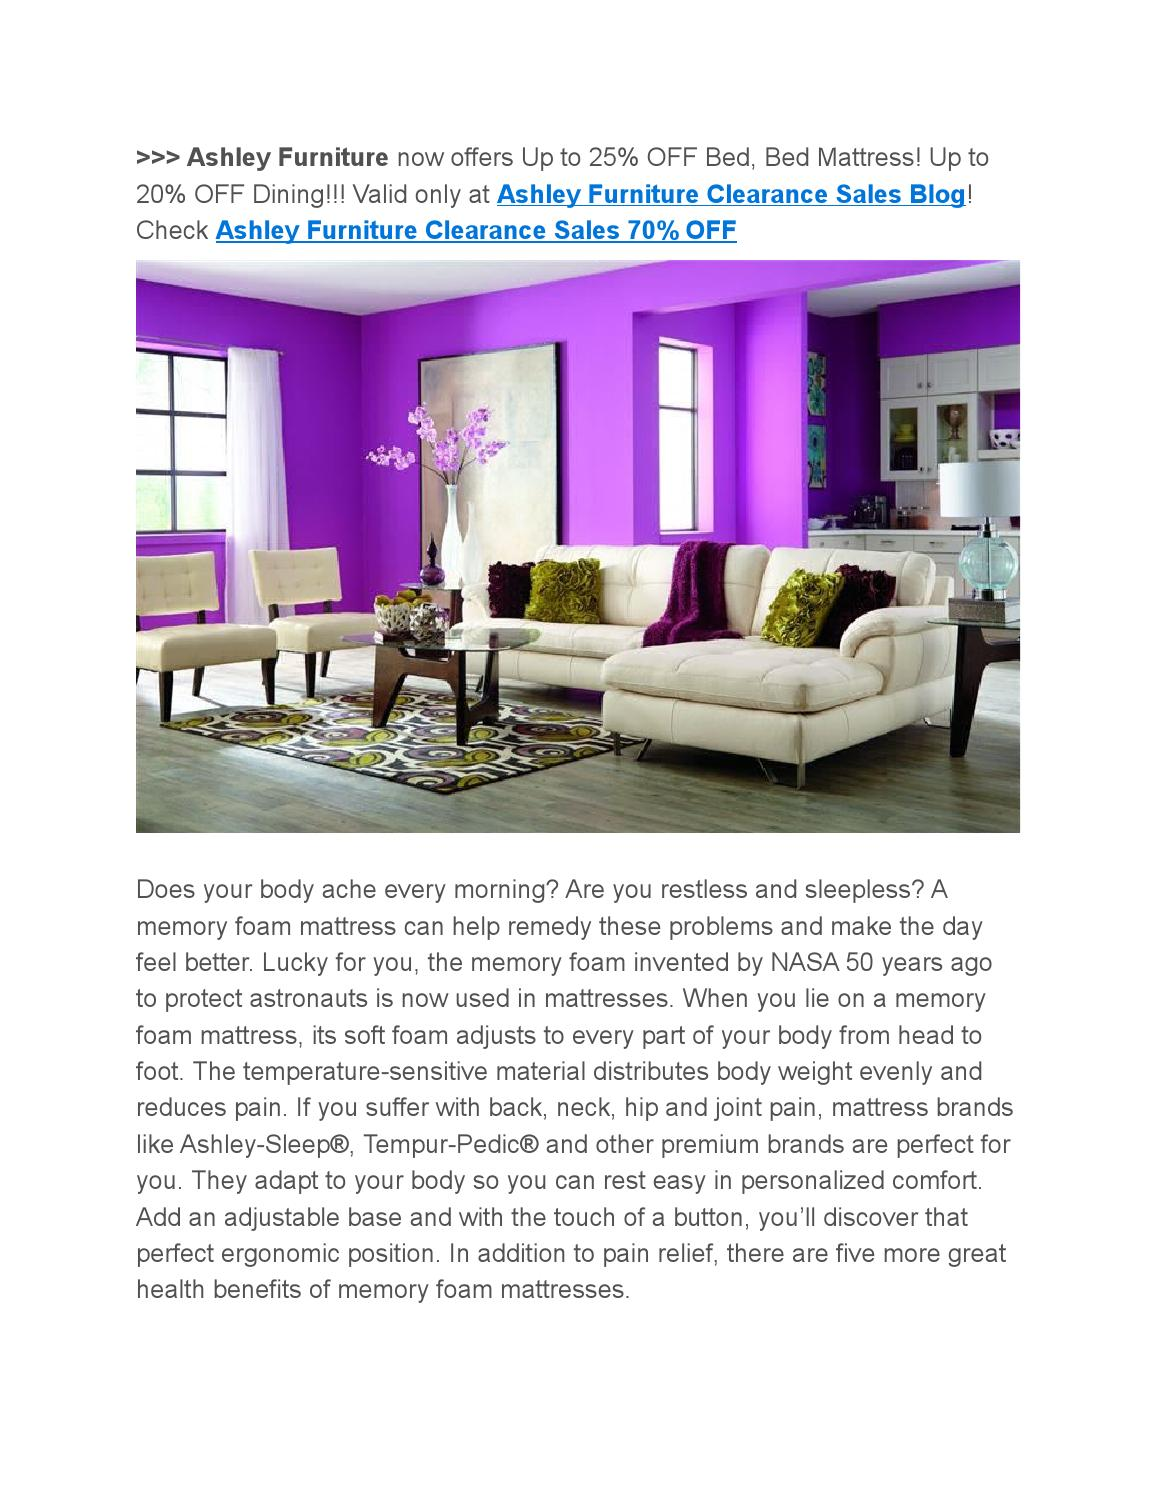 Picture of: Ashley Furniture Clearance Sales 70 Off 6 Reasons Why You Need A Memory Foam Mattress Now By Wright Sophia Issuu